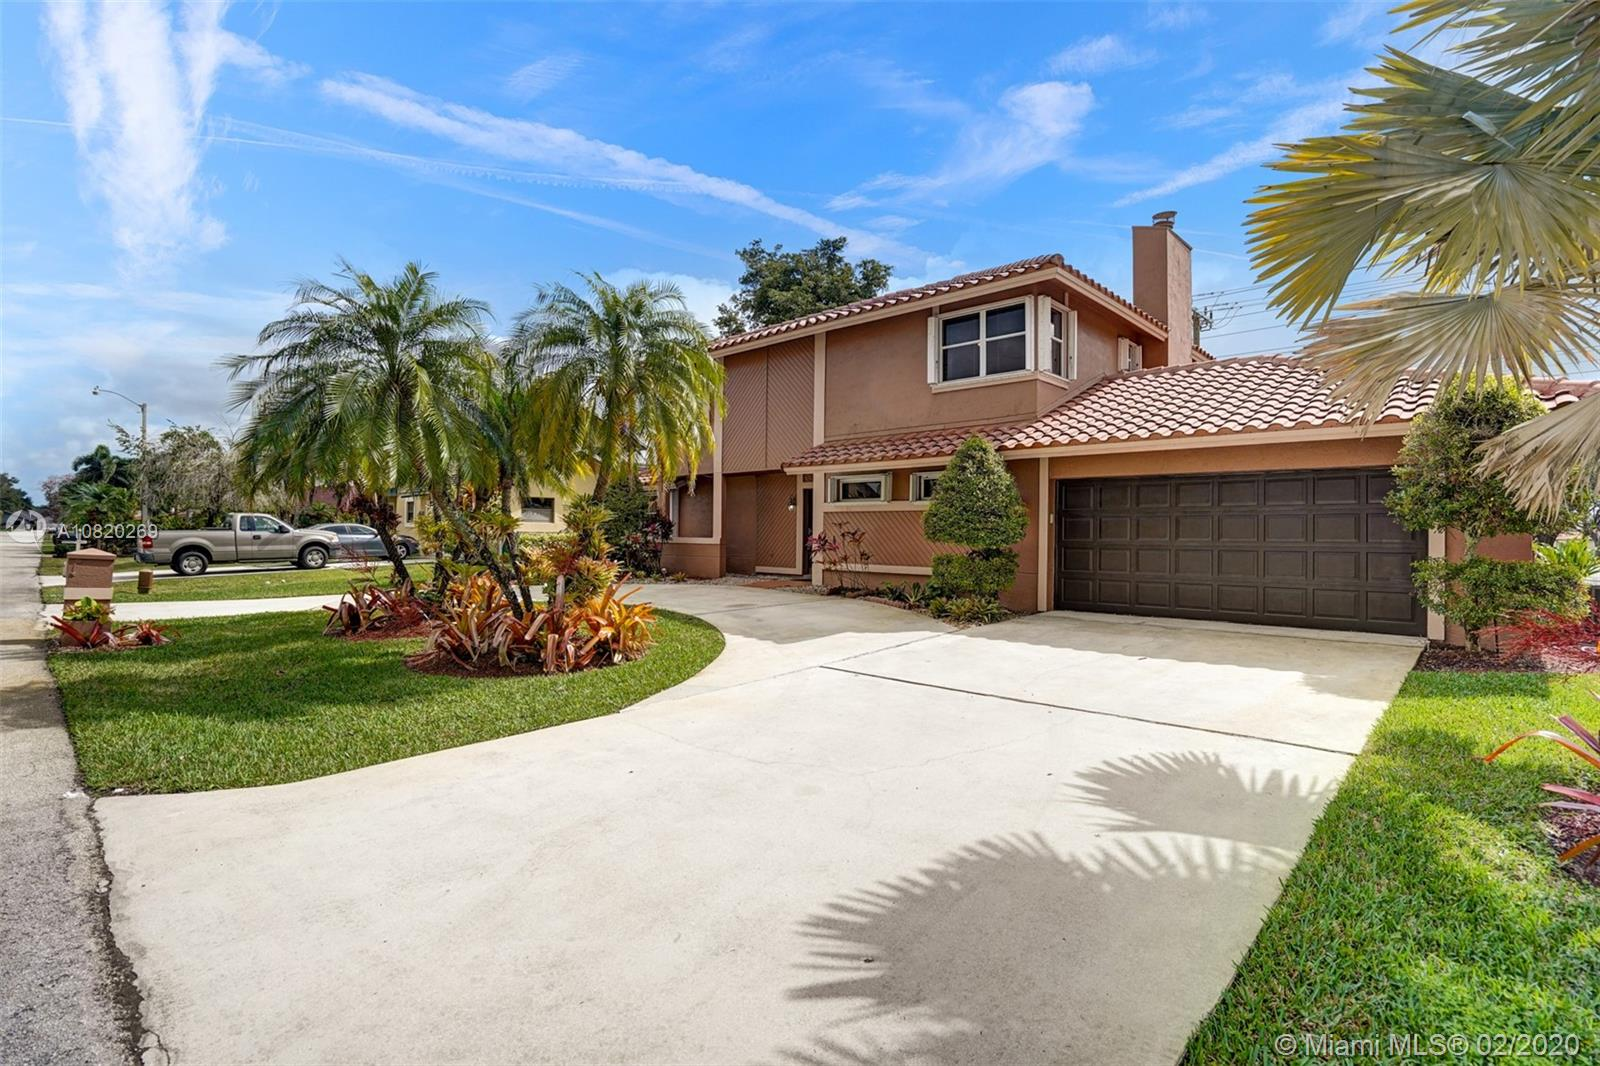 15140  Tetherclift St  For Sale A10820269, FL